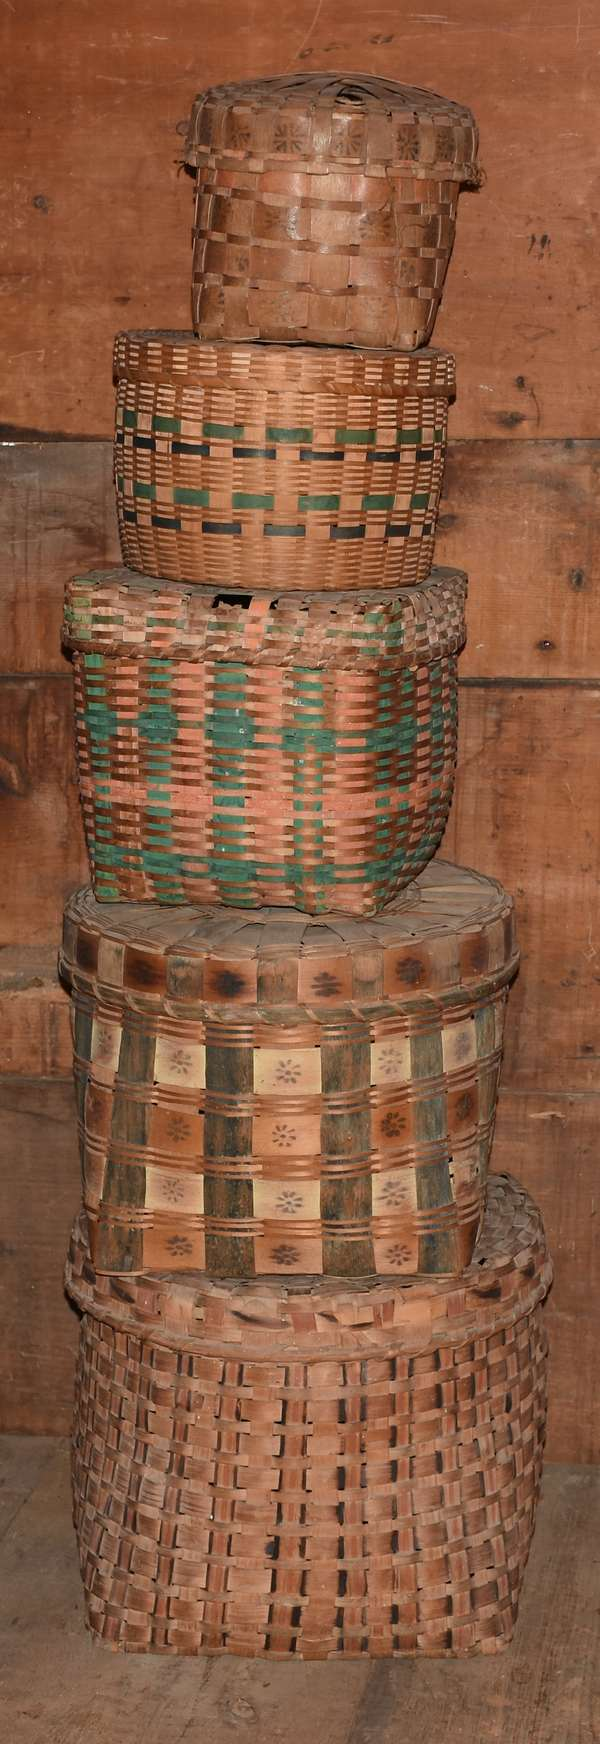 Nesting group of five Northern Woodland Indian polychrome decorated splint baskets, 8